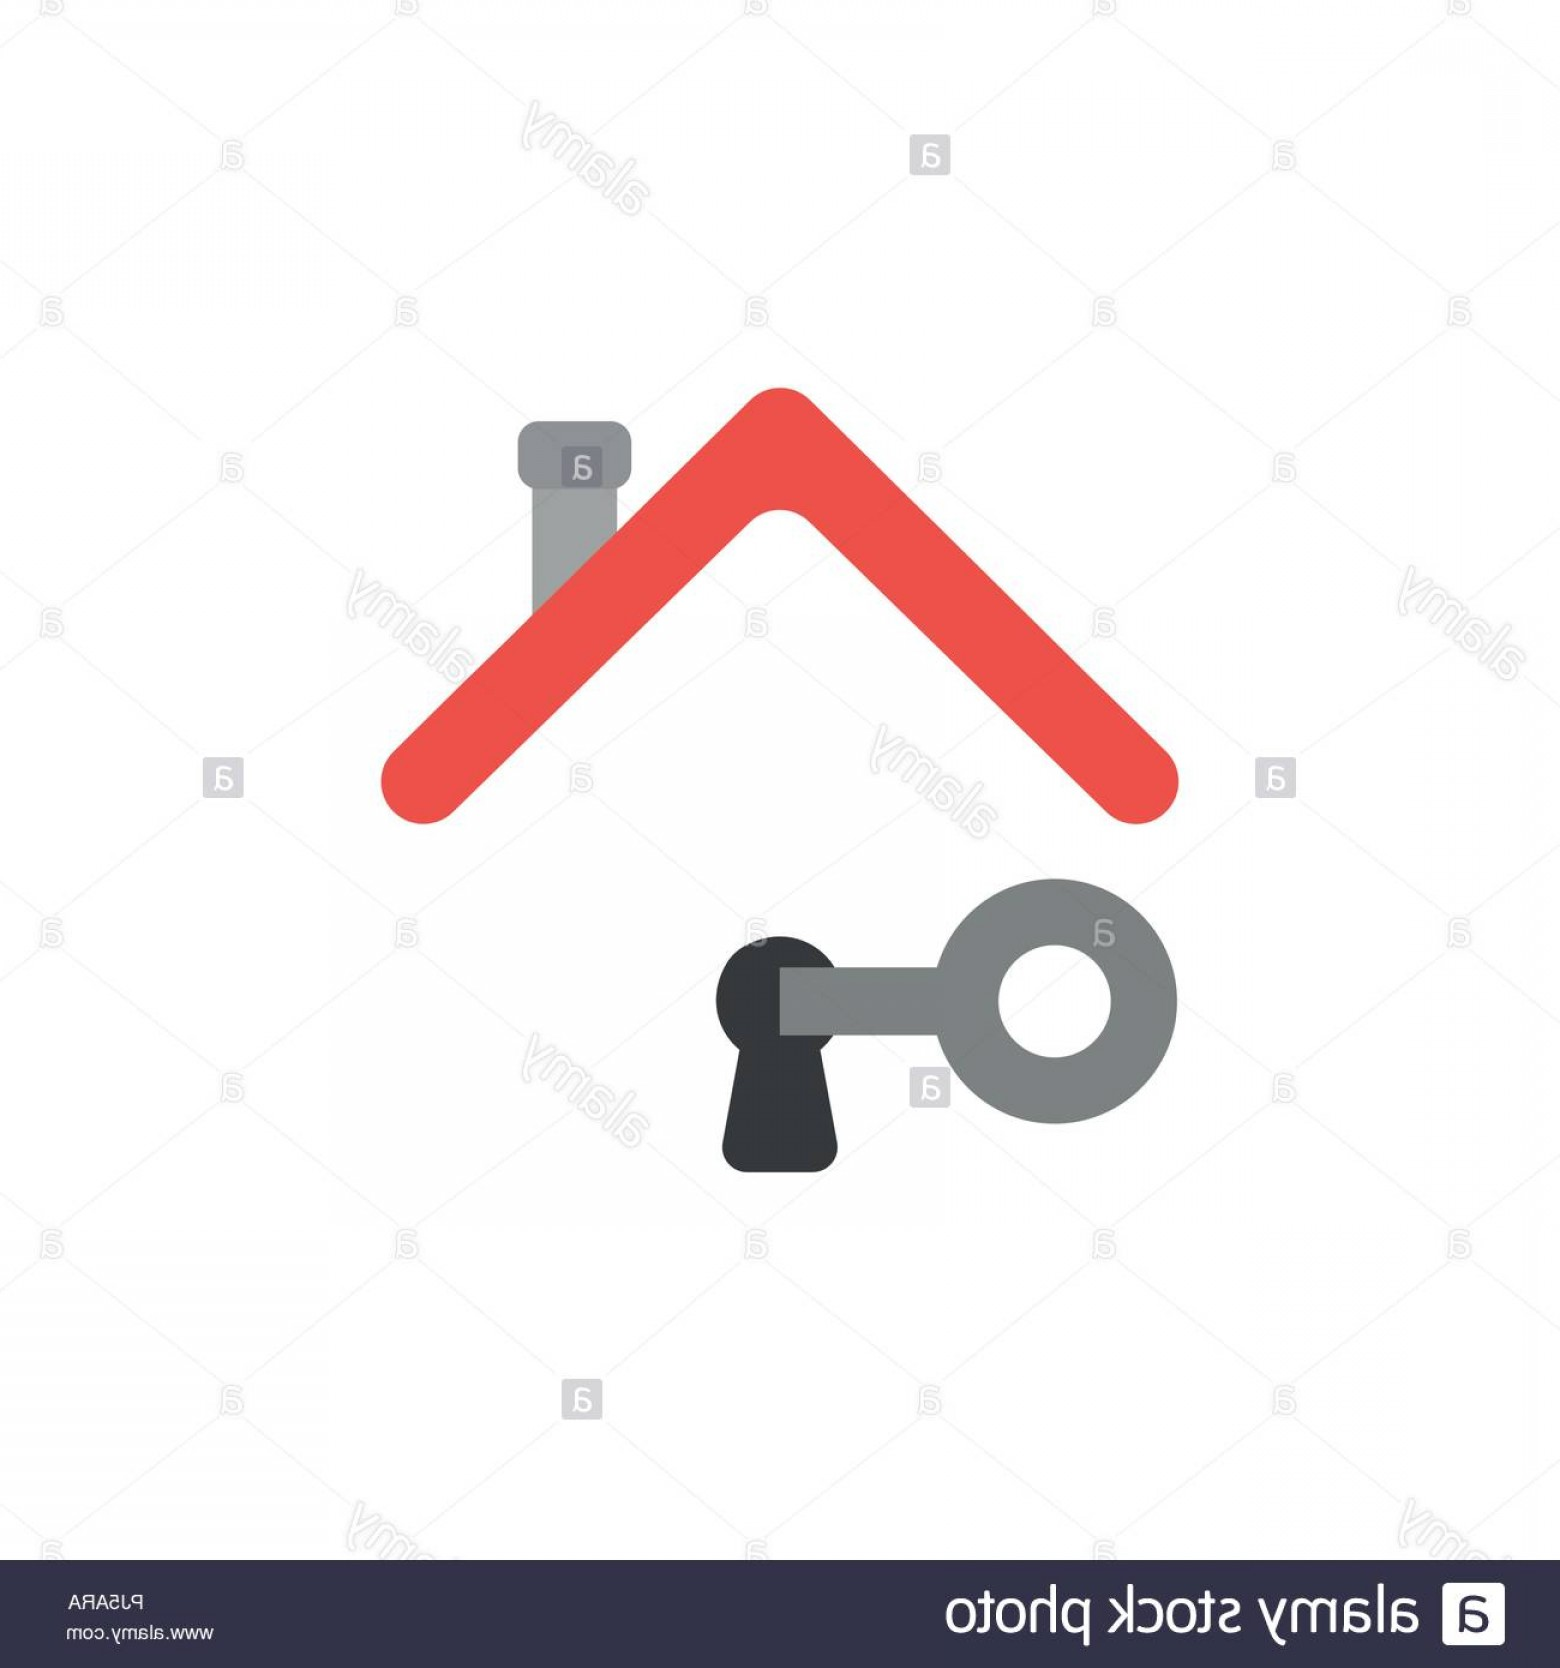 Keyholes And Key Vector Art: Vector Illustration Icon Concept Of Key Unlock Keyhole Under House Roof Image